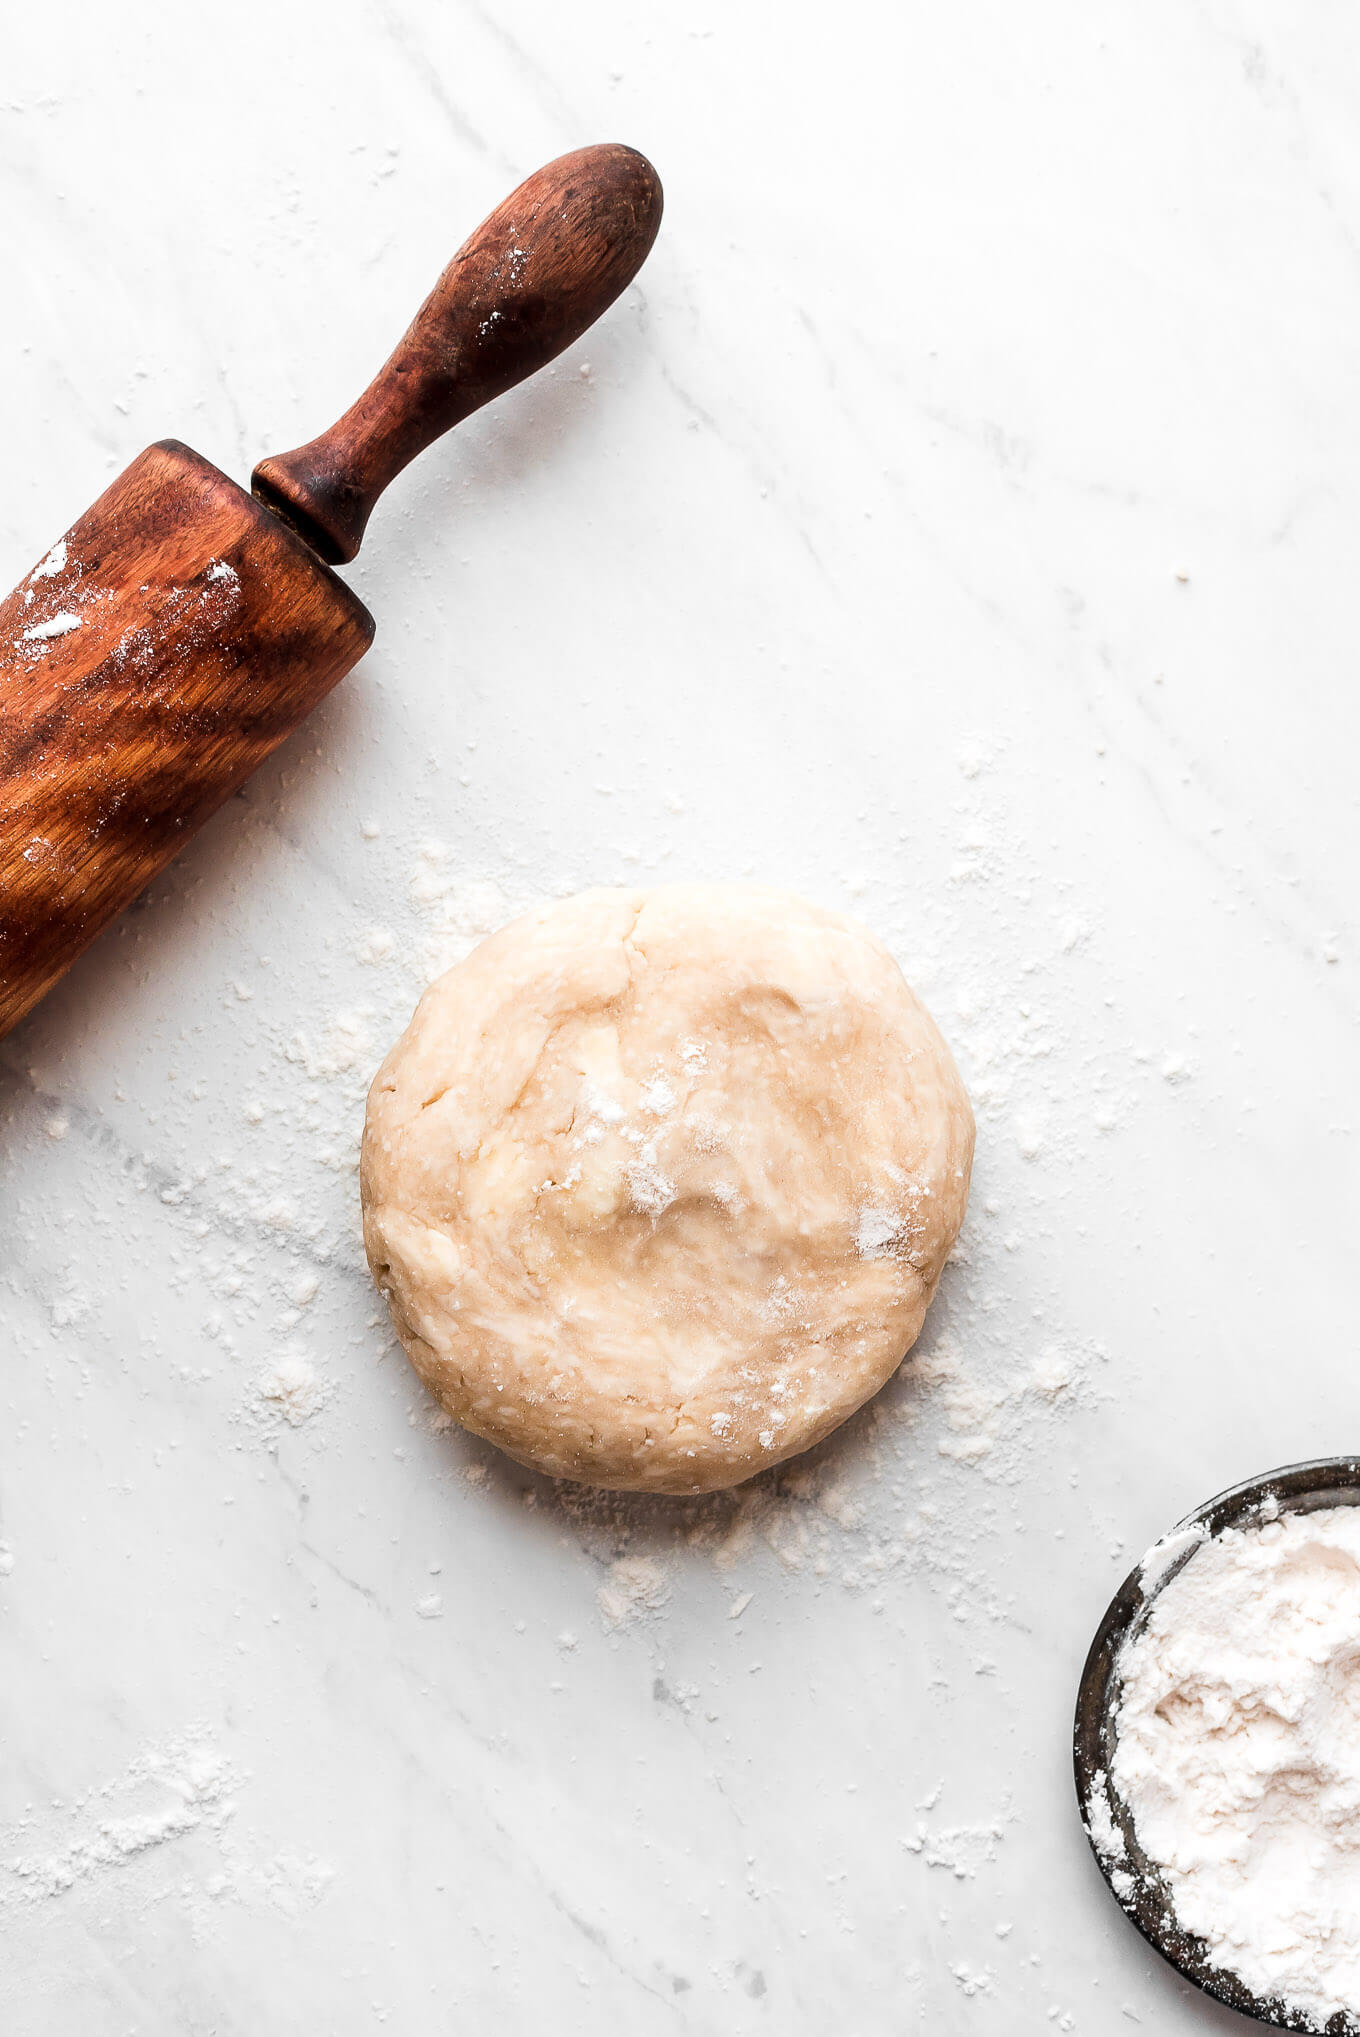 Pie dough, a rolling pin, and a dish of flour.